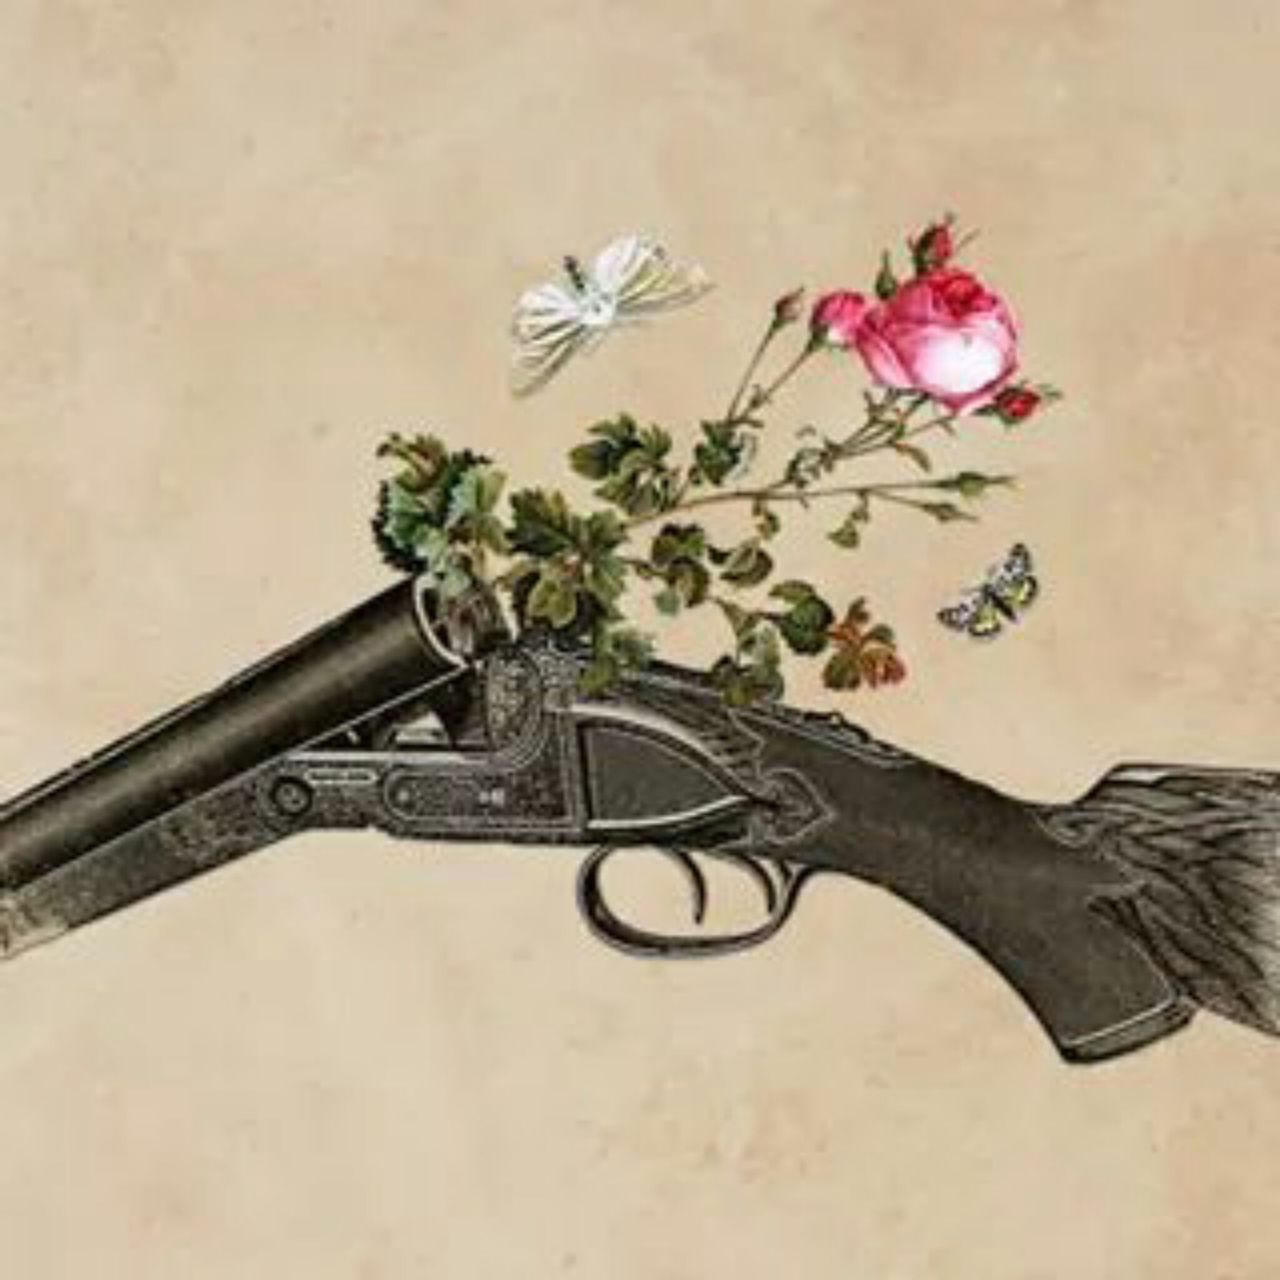 art, artistic, flowers, gun, love, peace, pistol